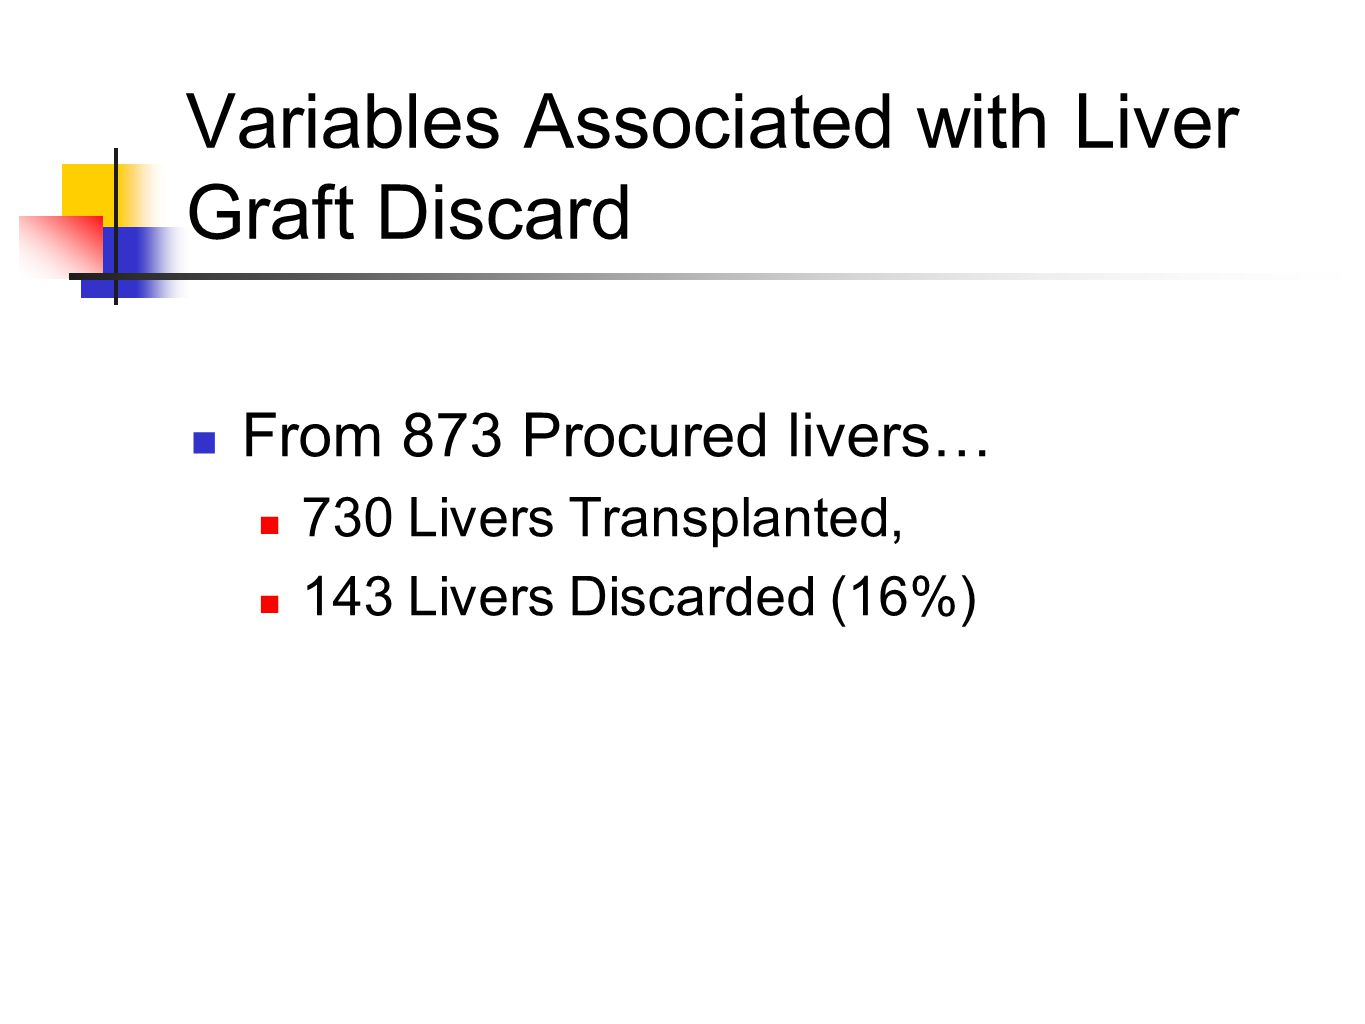 Variables Associated with Liver Graft Discard